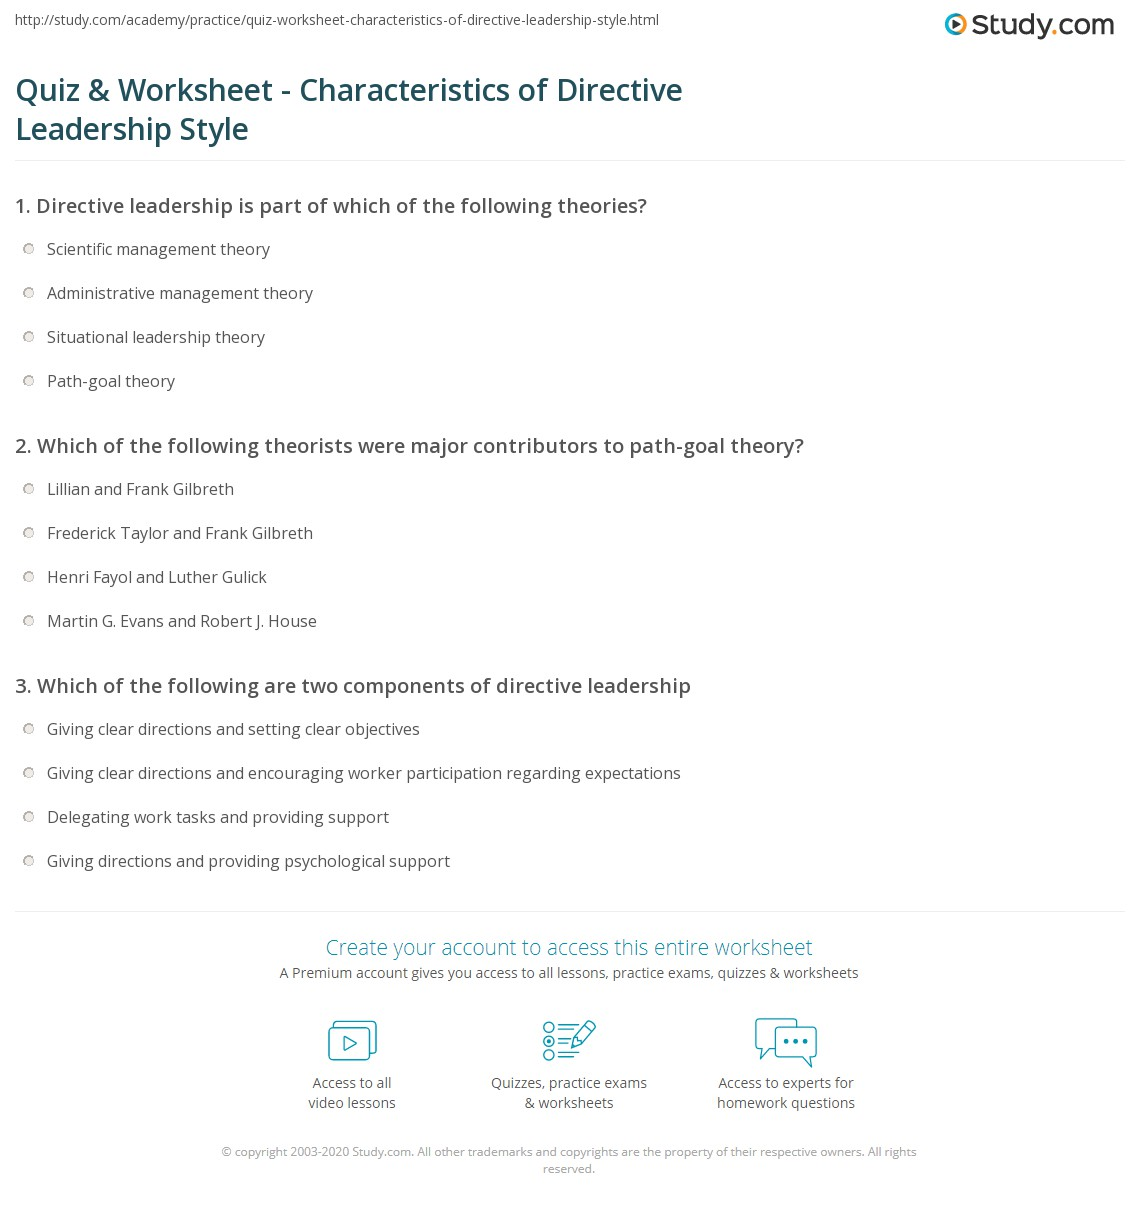 graphic about Leadership Style Quiz Printable named Quiz Worksheet - Capabilities of Directive Management